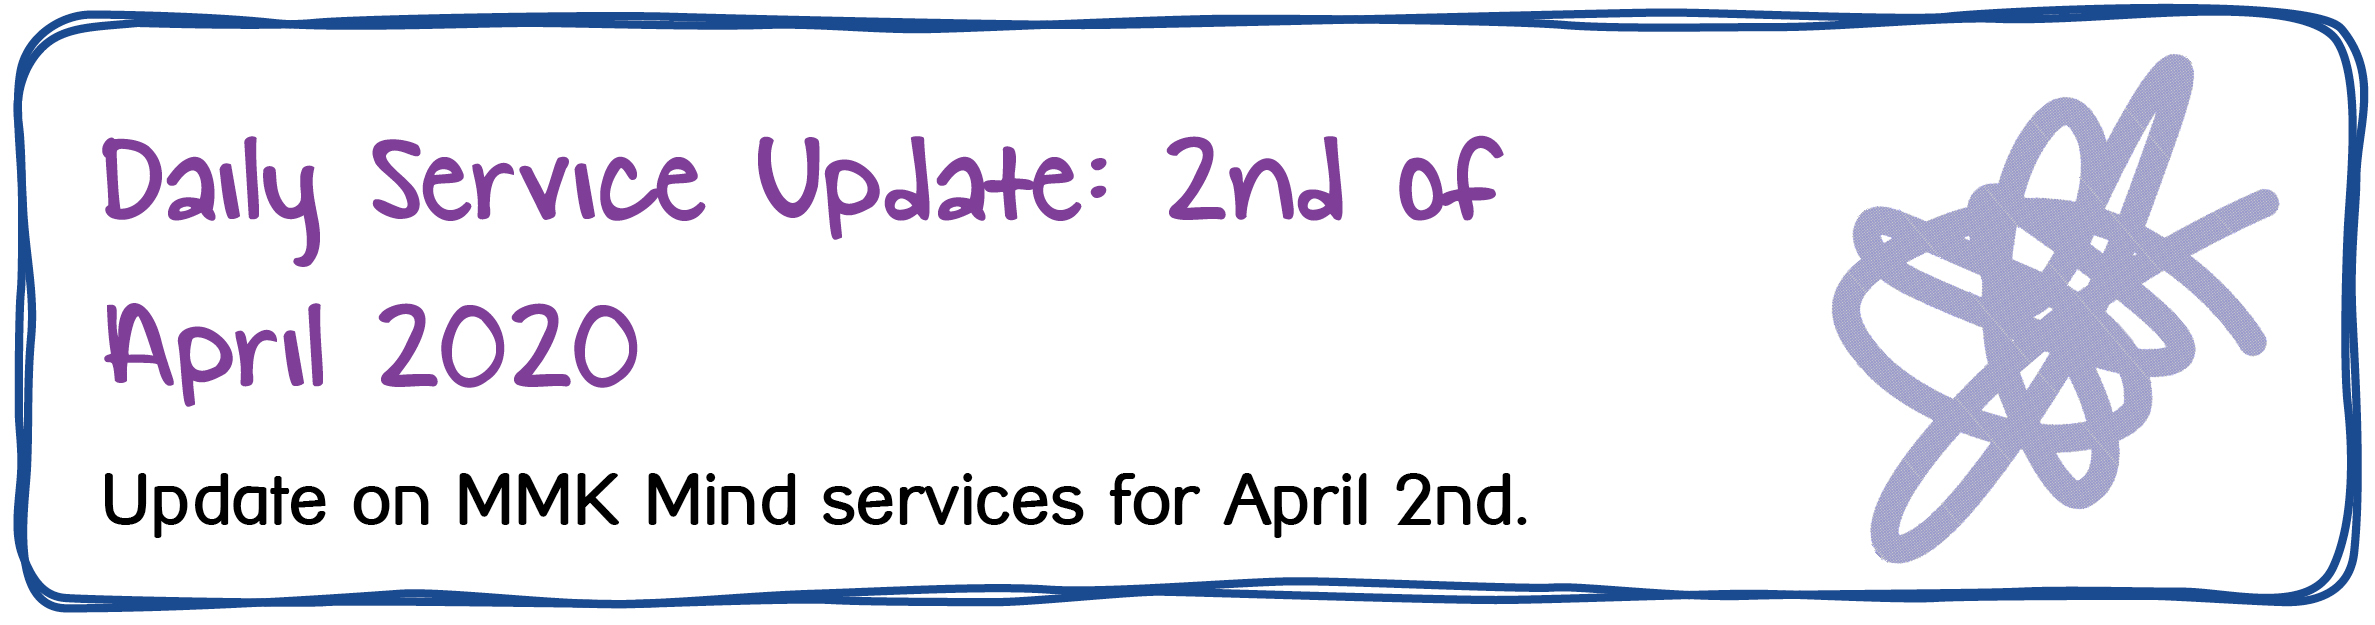 Daily Service Update: 2nd of April 2020. Update on MMK Mind services for April 2nd.